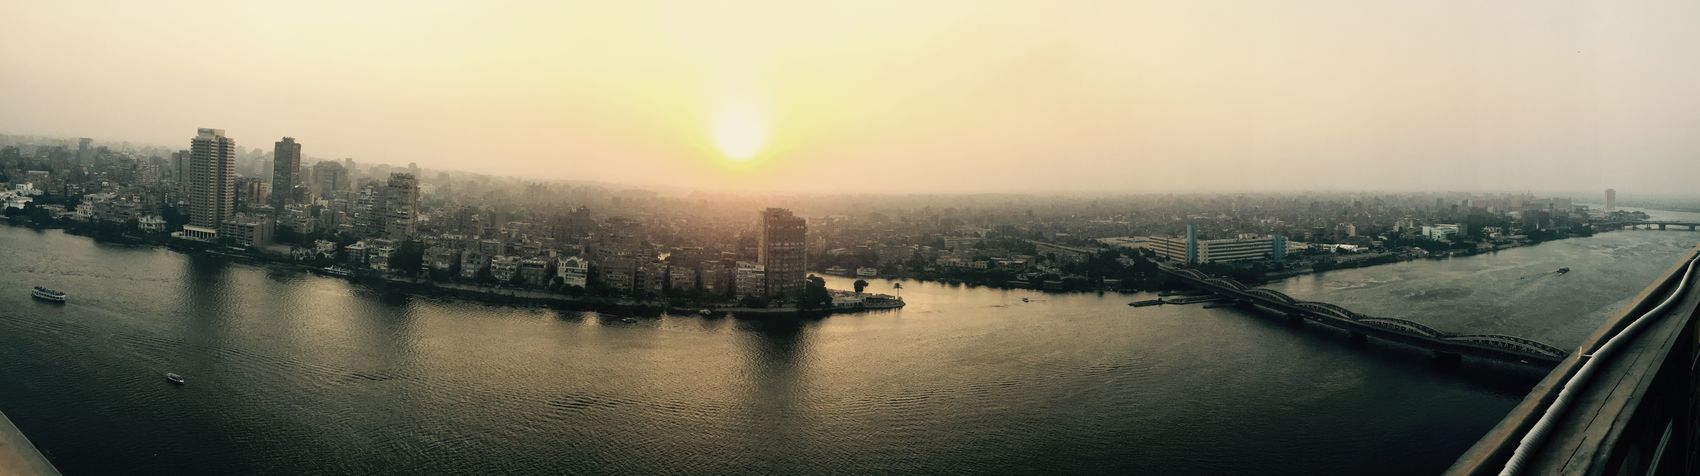 Cairo Cairo Egypt Cairo Sunset NILE VIEW Nile River Nile Sunset Nile